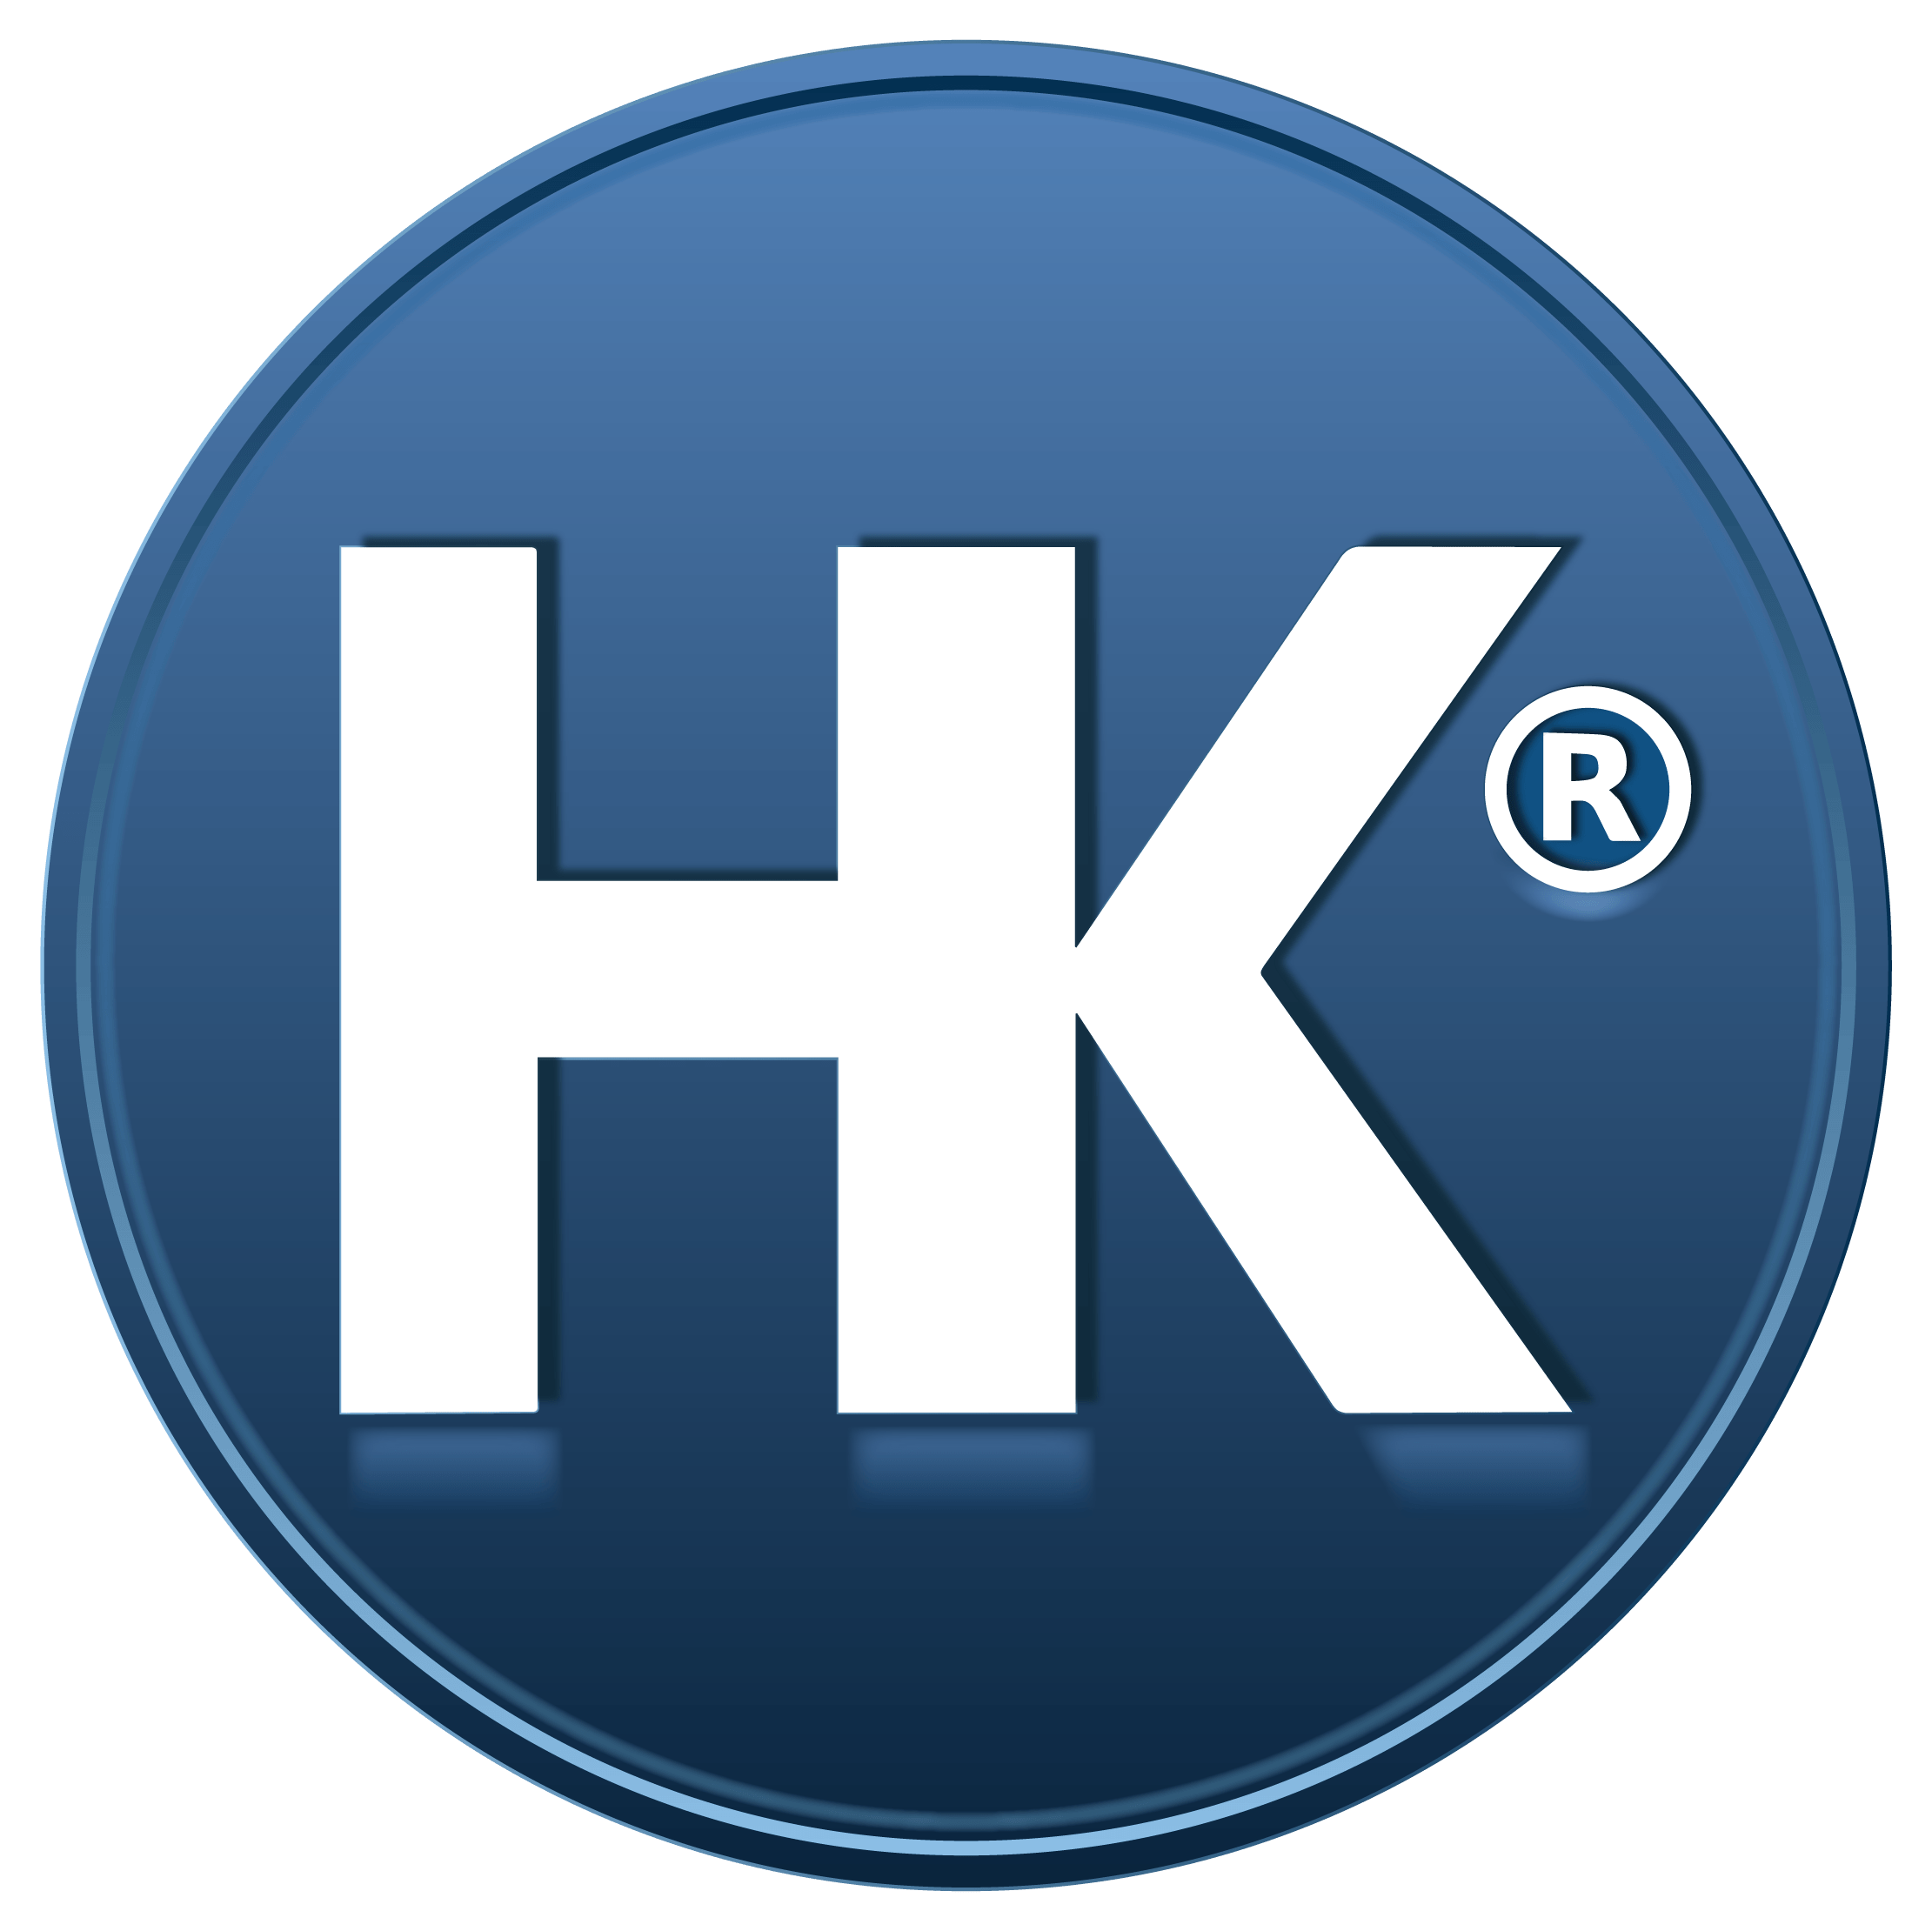 HK® Creative Investments